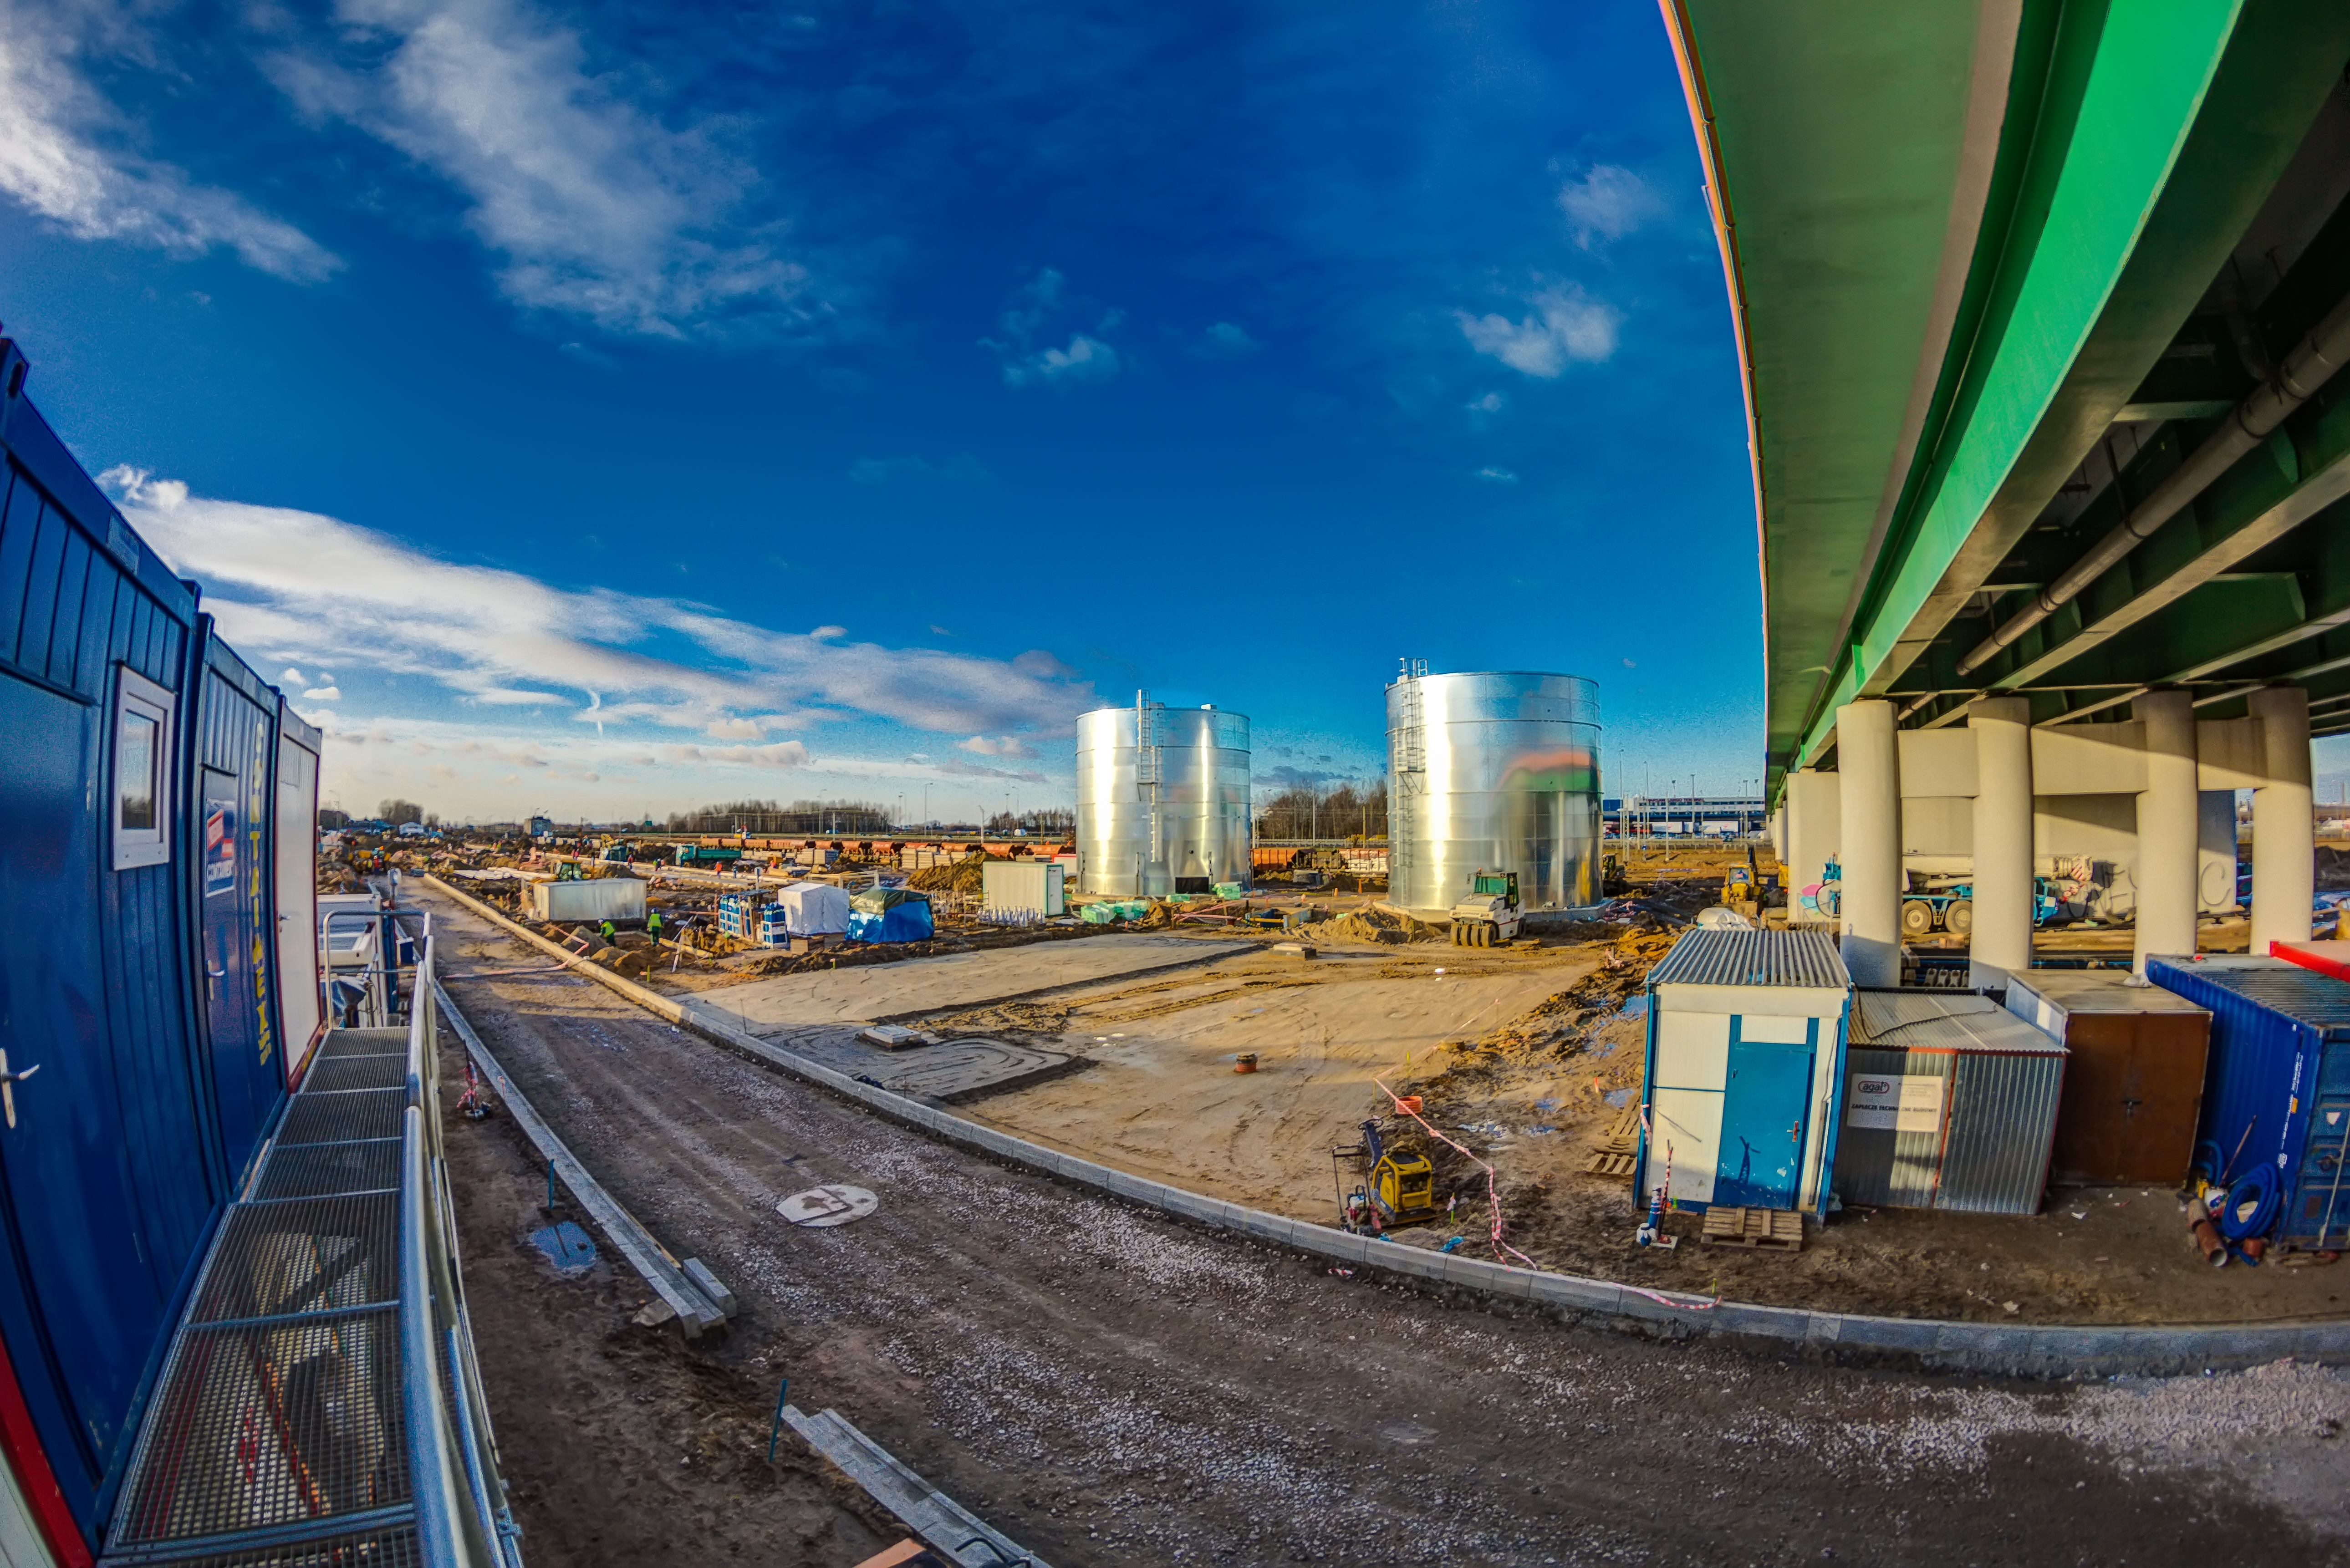 Construction of JET-A1 rail supply facility at the Chopin Airport in